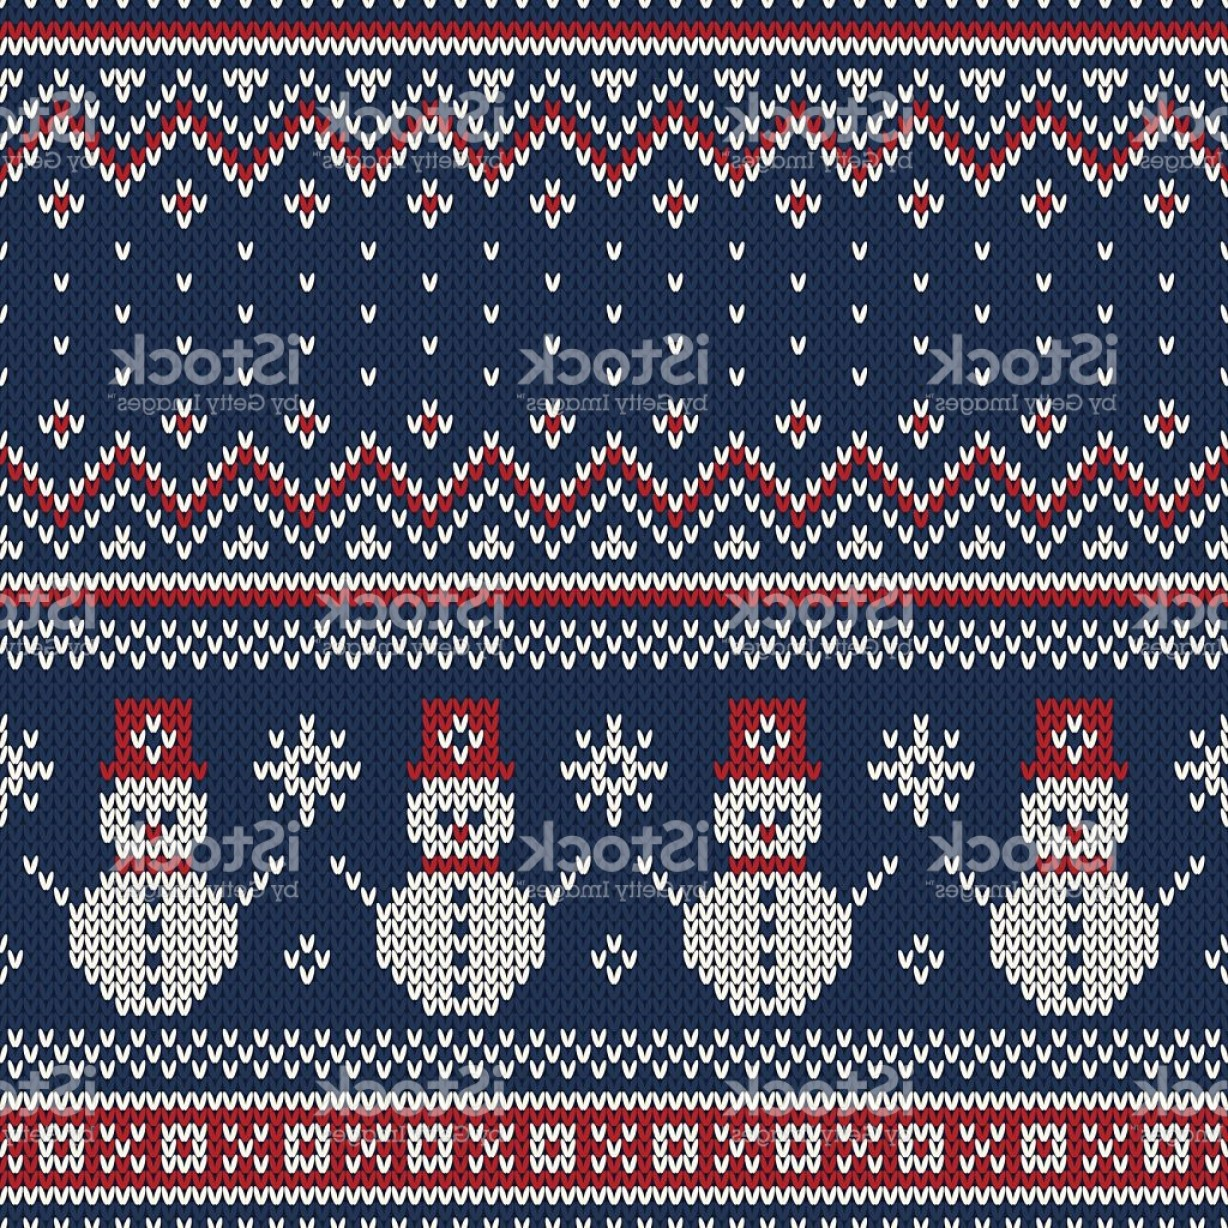 Christmas Sweater Design Vector: Christmas Sweater Design Seamless Knitted Pattern Gm